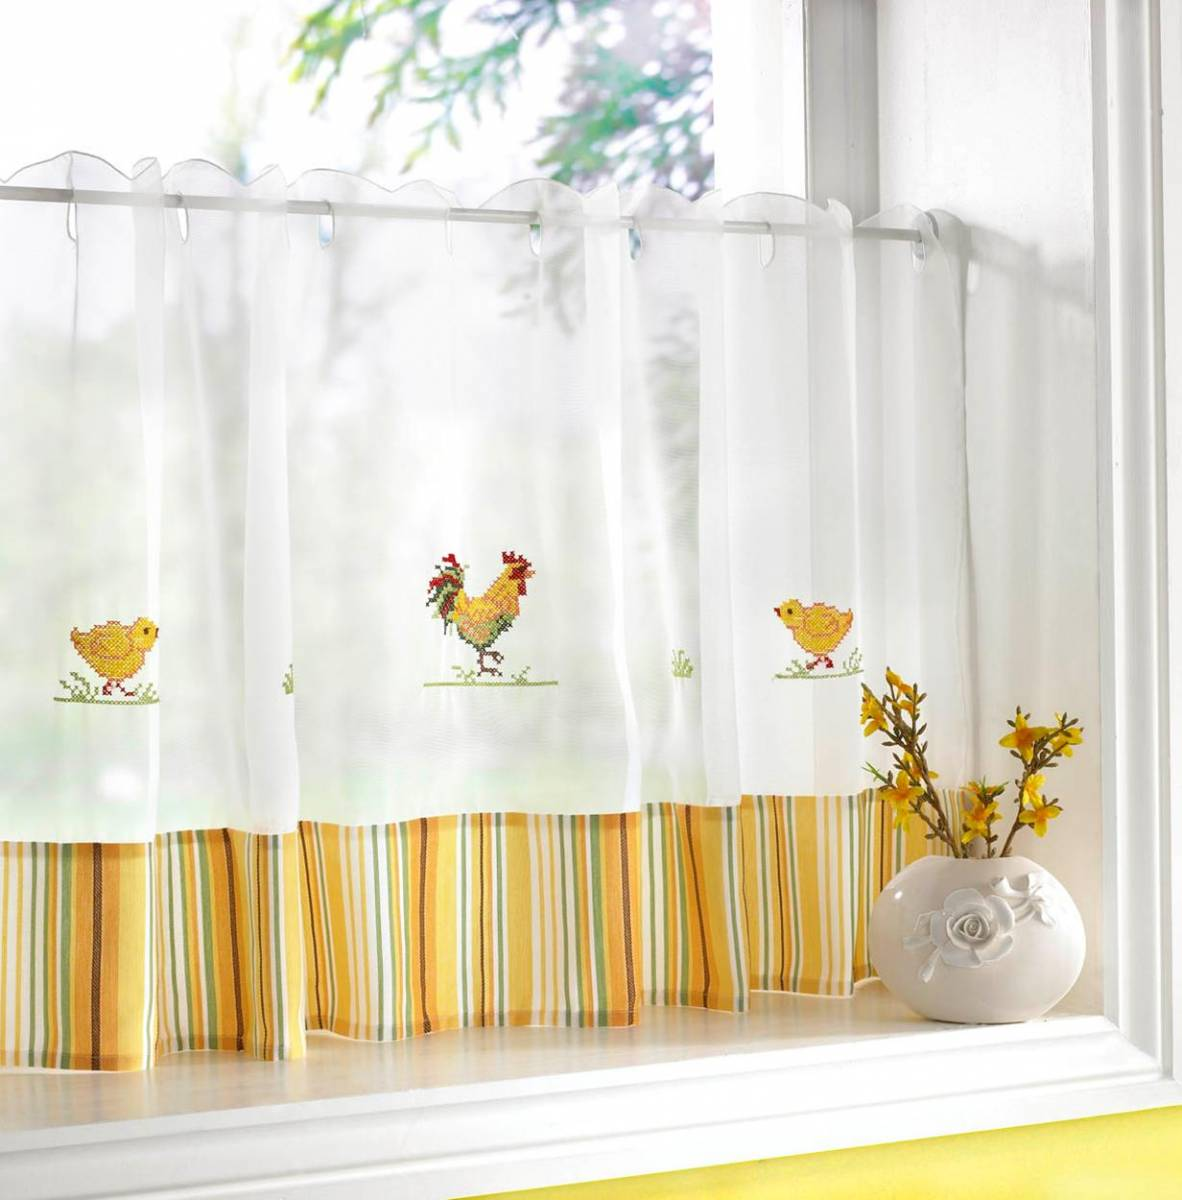 Chickens Cafe Curtain Width 60 Net Curtain 2 Curtains